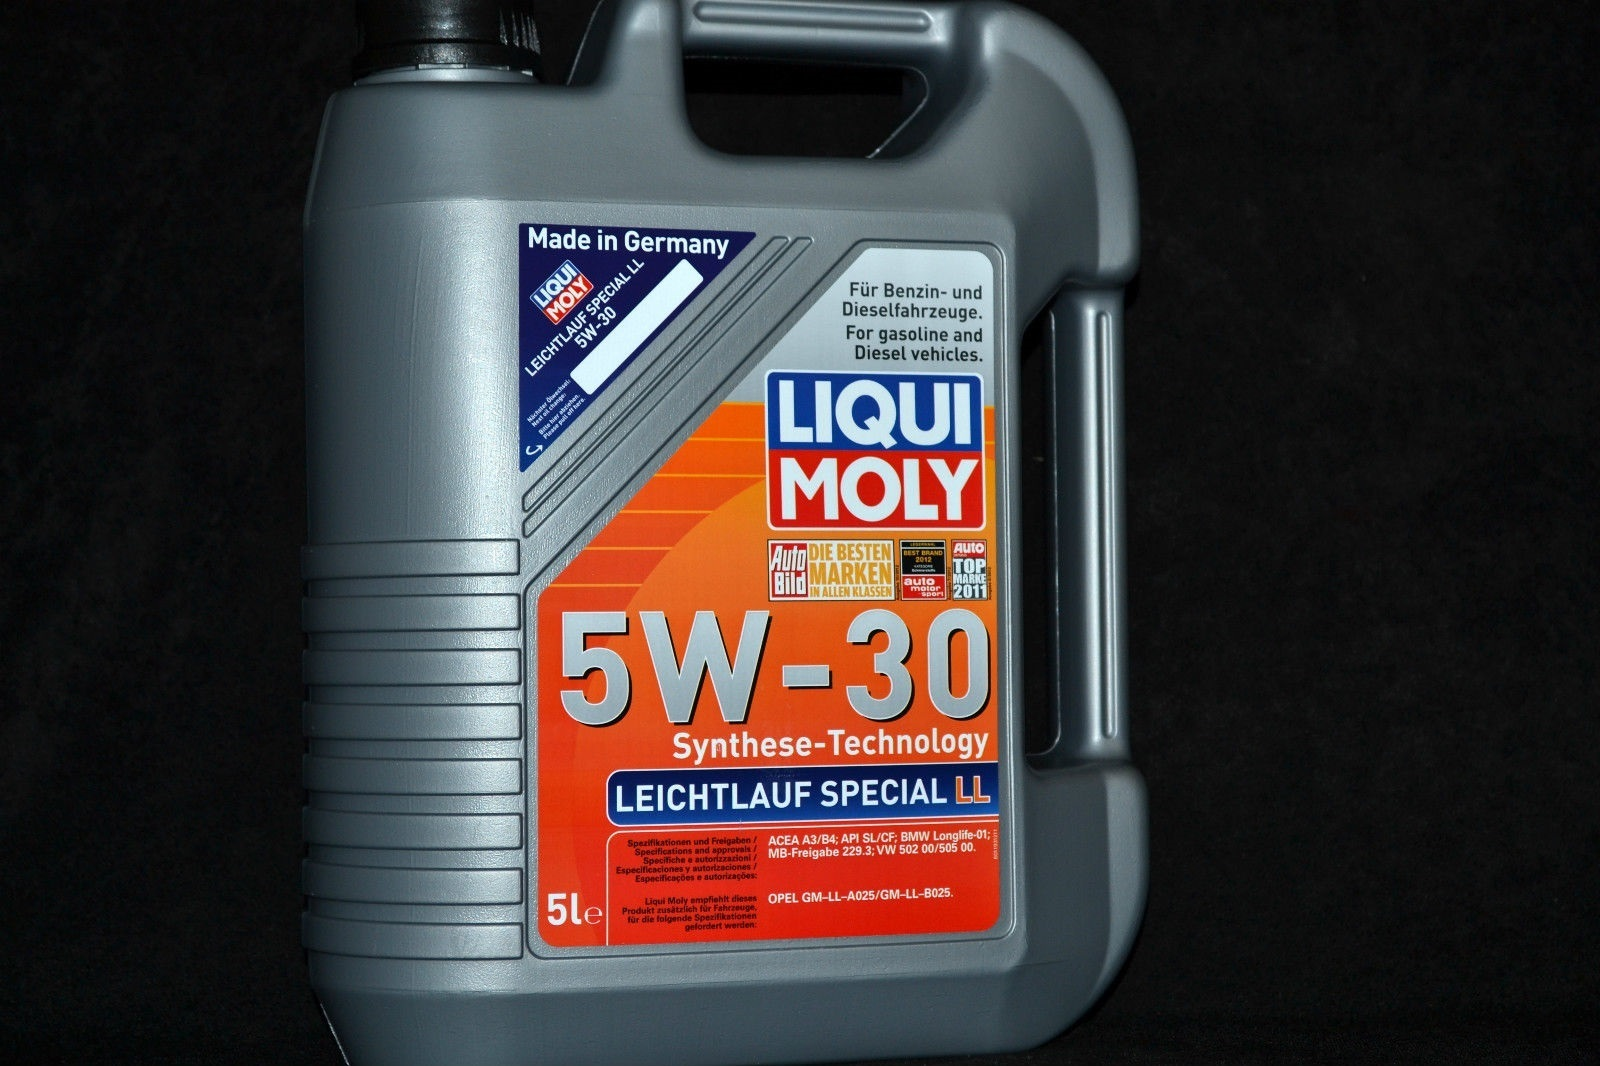 5 liter liqui moly special tec ll 5w30 motor l 5w 30 gm opel mb 229 5 vw bmw levoil. Black Bedroom Furniture Sets. Home Design Ideas